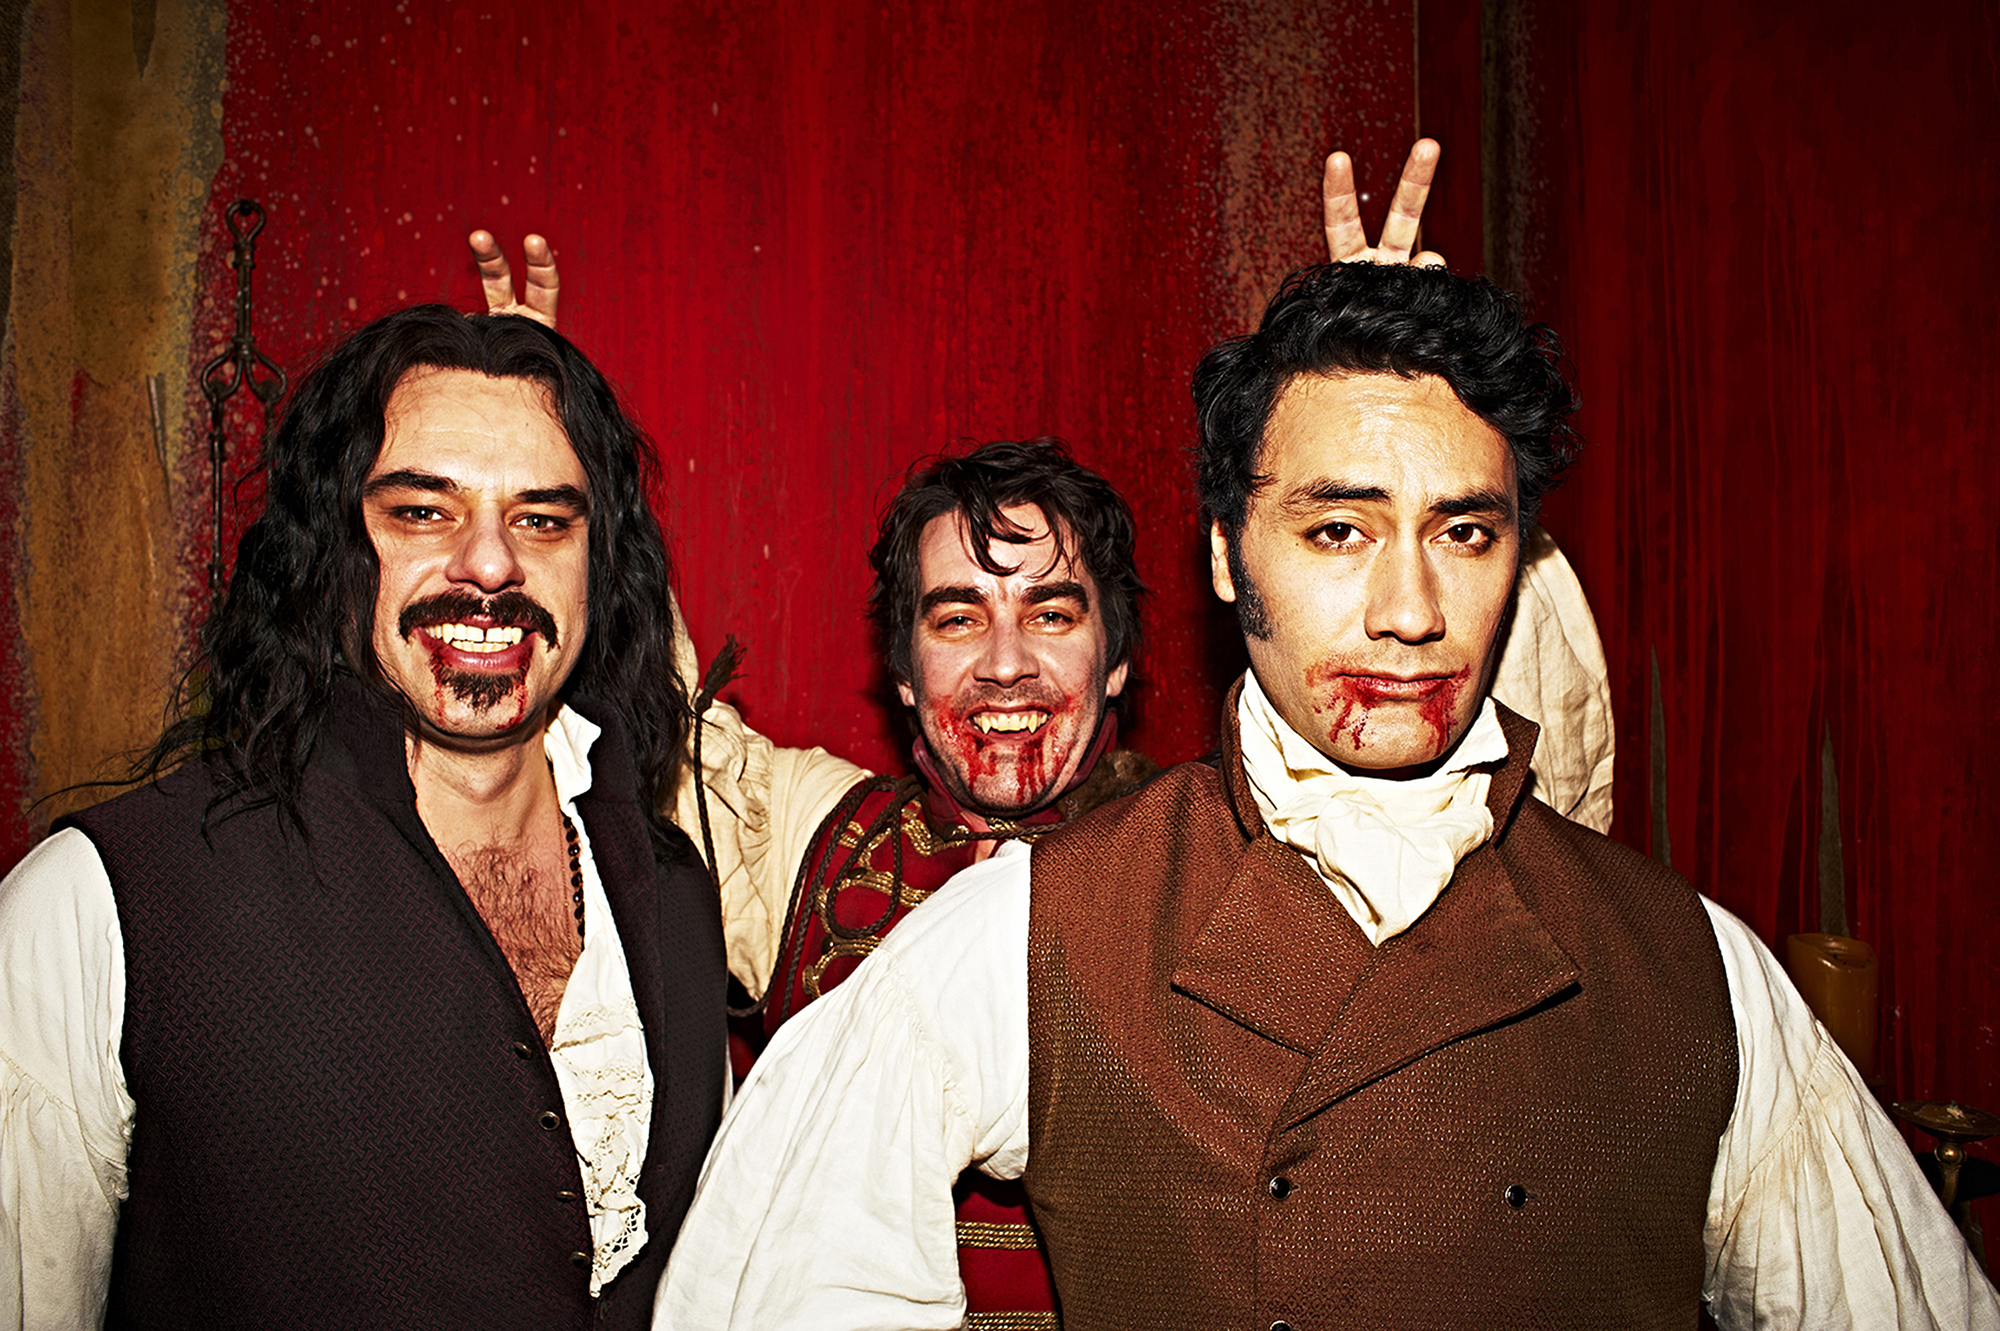 Whatwedointheshadows.jpg